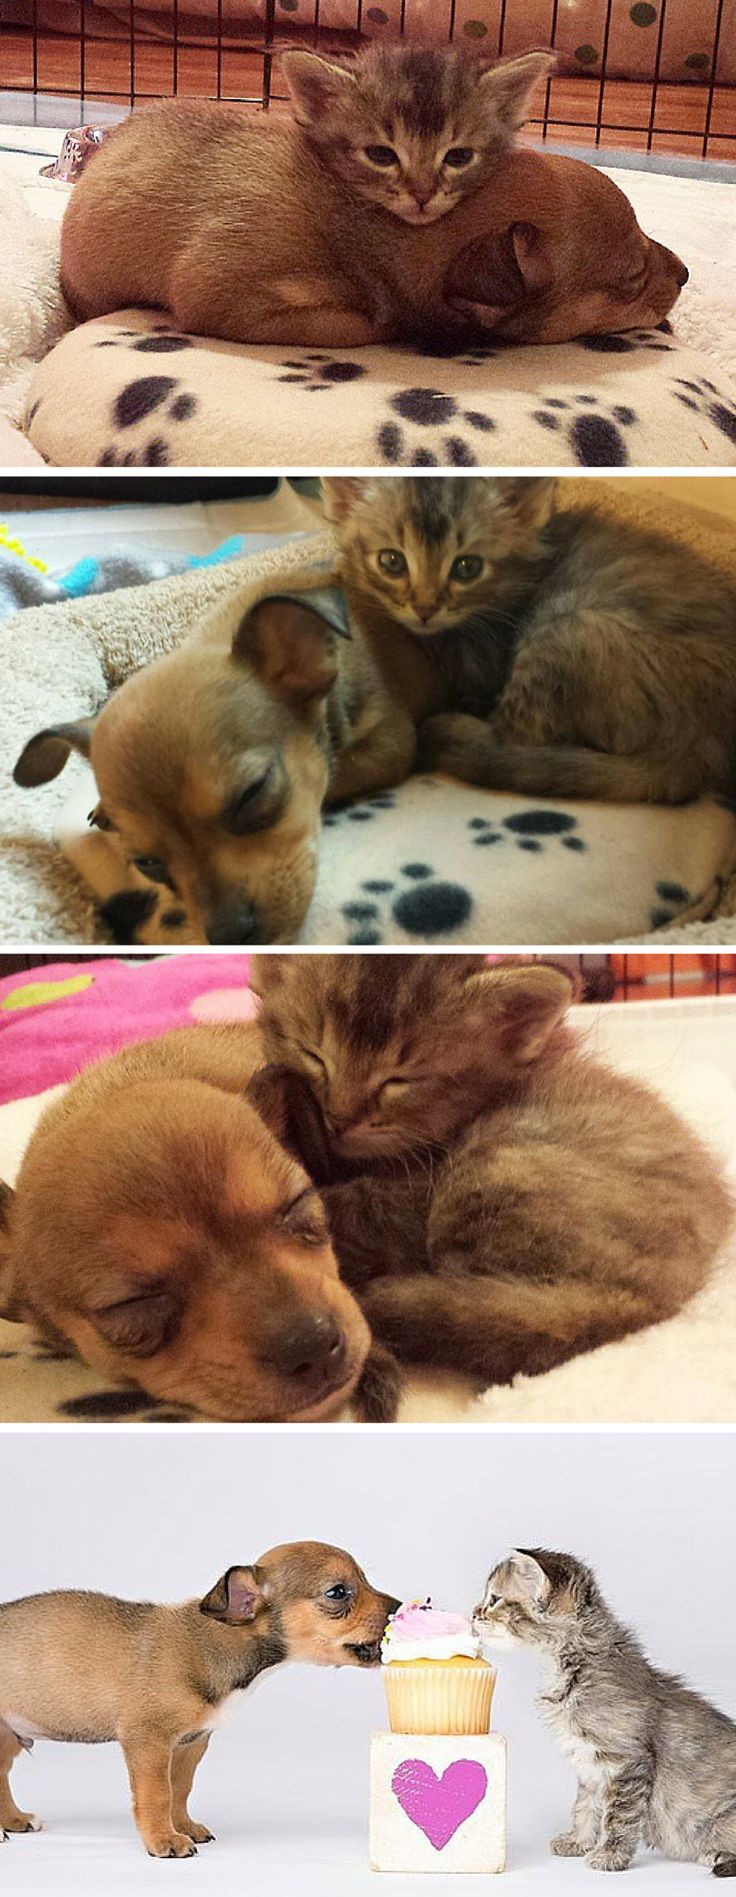 These two tiny critters were all alone in the world — until they found each other.  Chip is a 5-week-old Chihuahua who was brought to Operation Kindness in Carrollton, Texas last week by people who couldn't care for him. Little Adele is a 4-week-old kitten who was found all by herself as a stray.  The orphans were paired together by the staff in hopes that they would keep each other company.